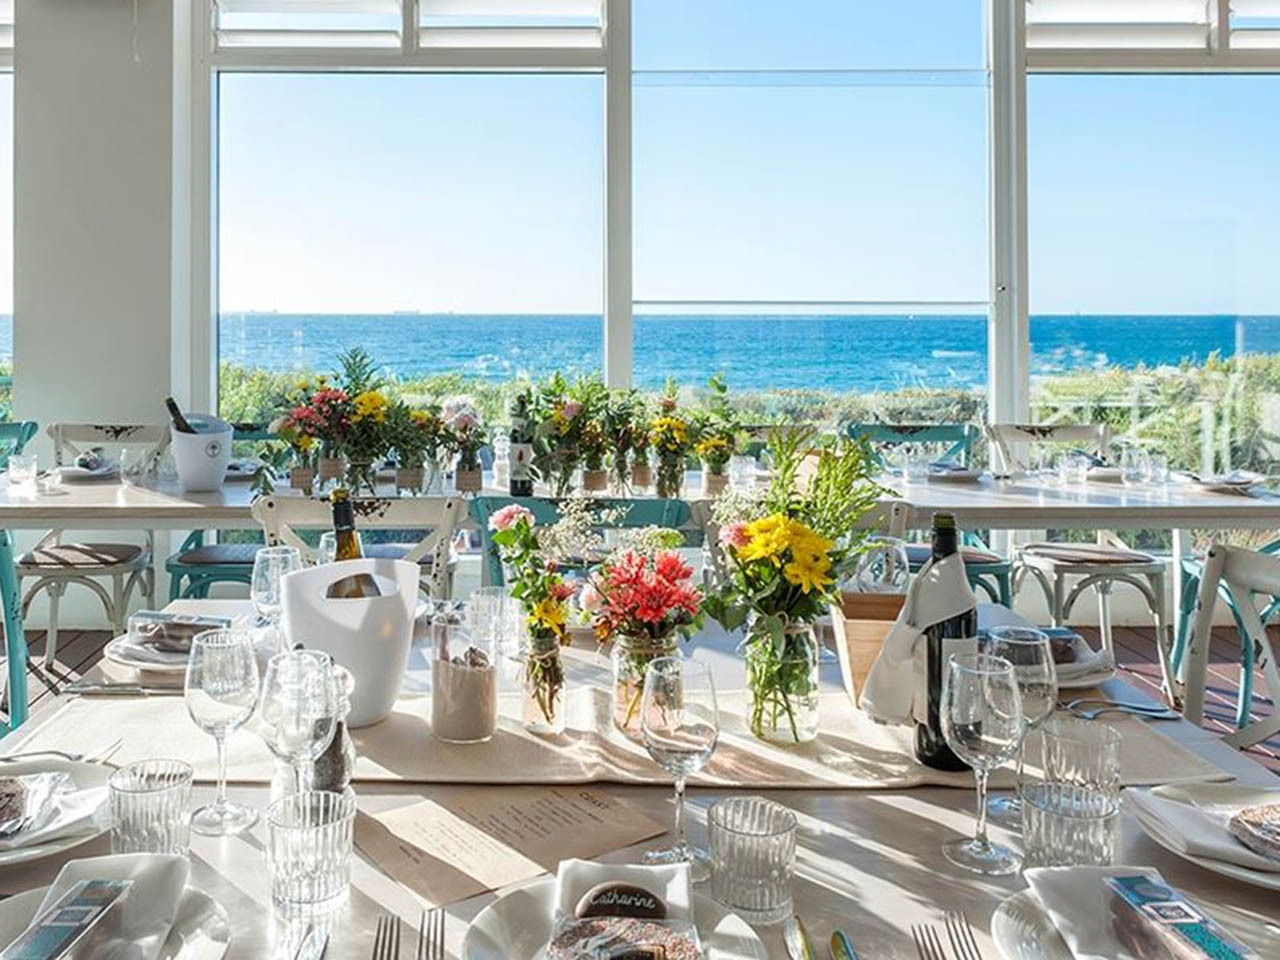 A Table Set Up With Flowers And A View Of The Ocean.